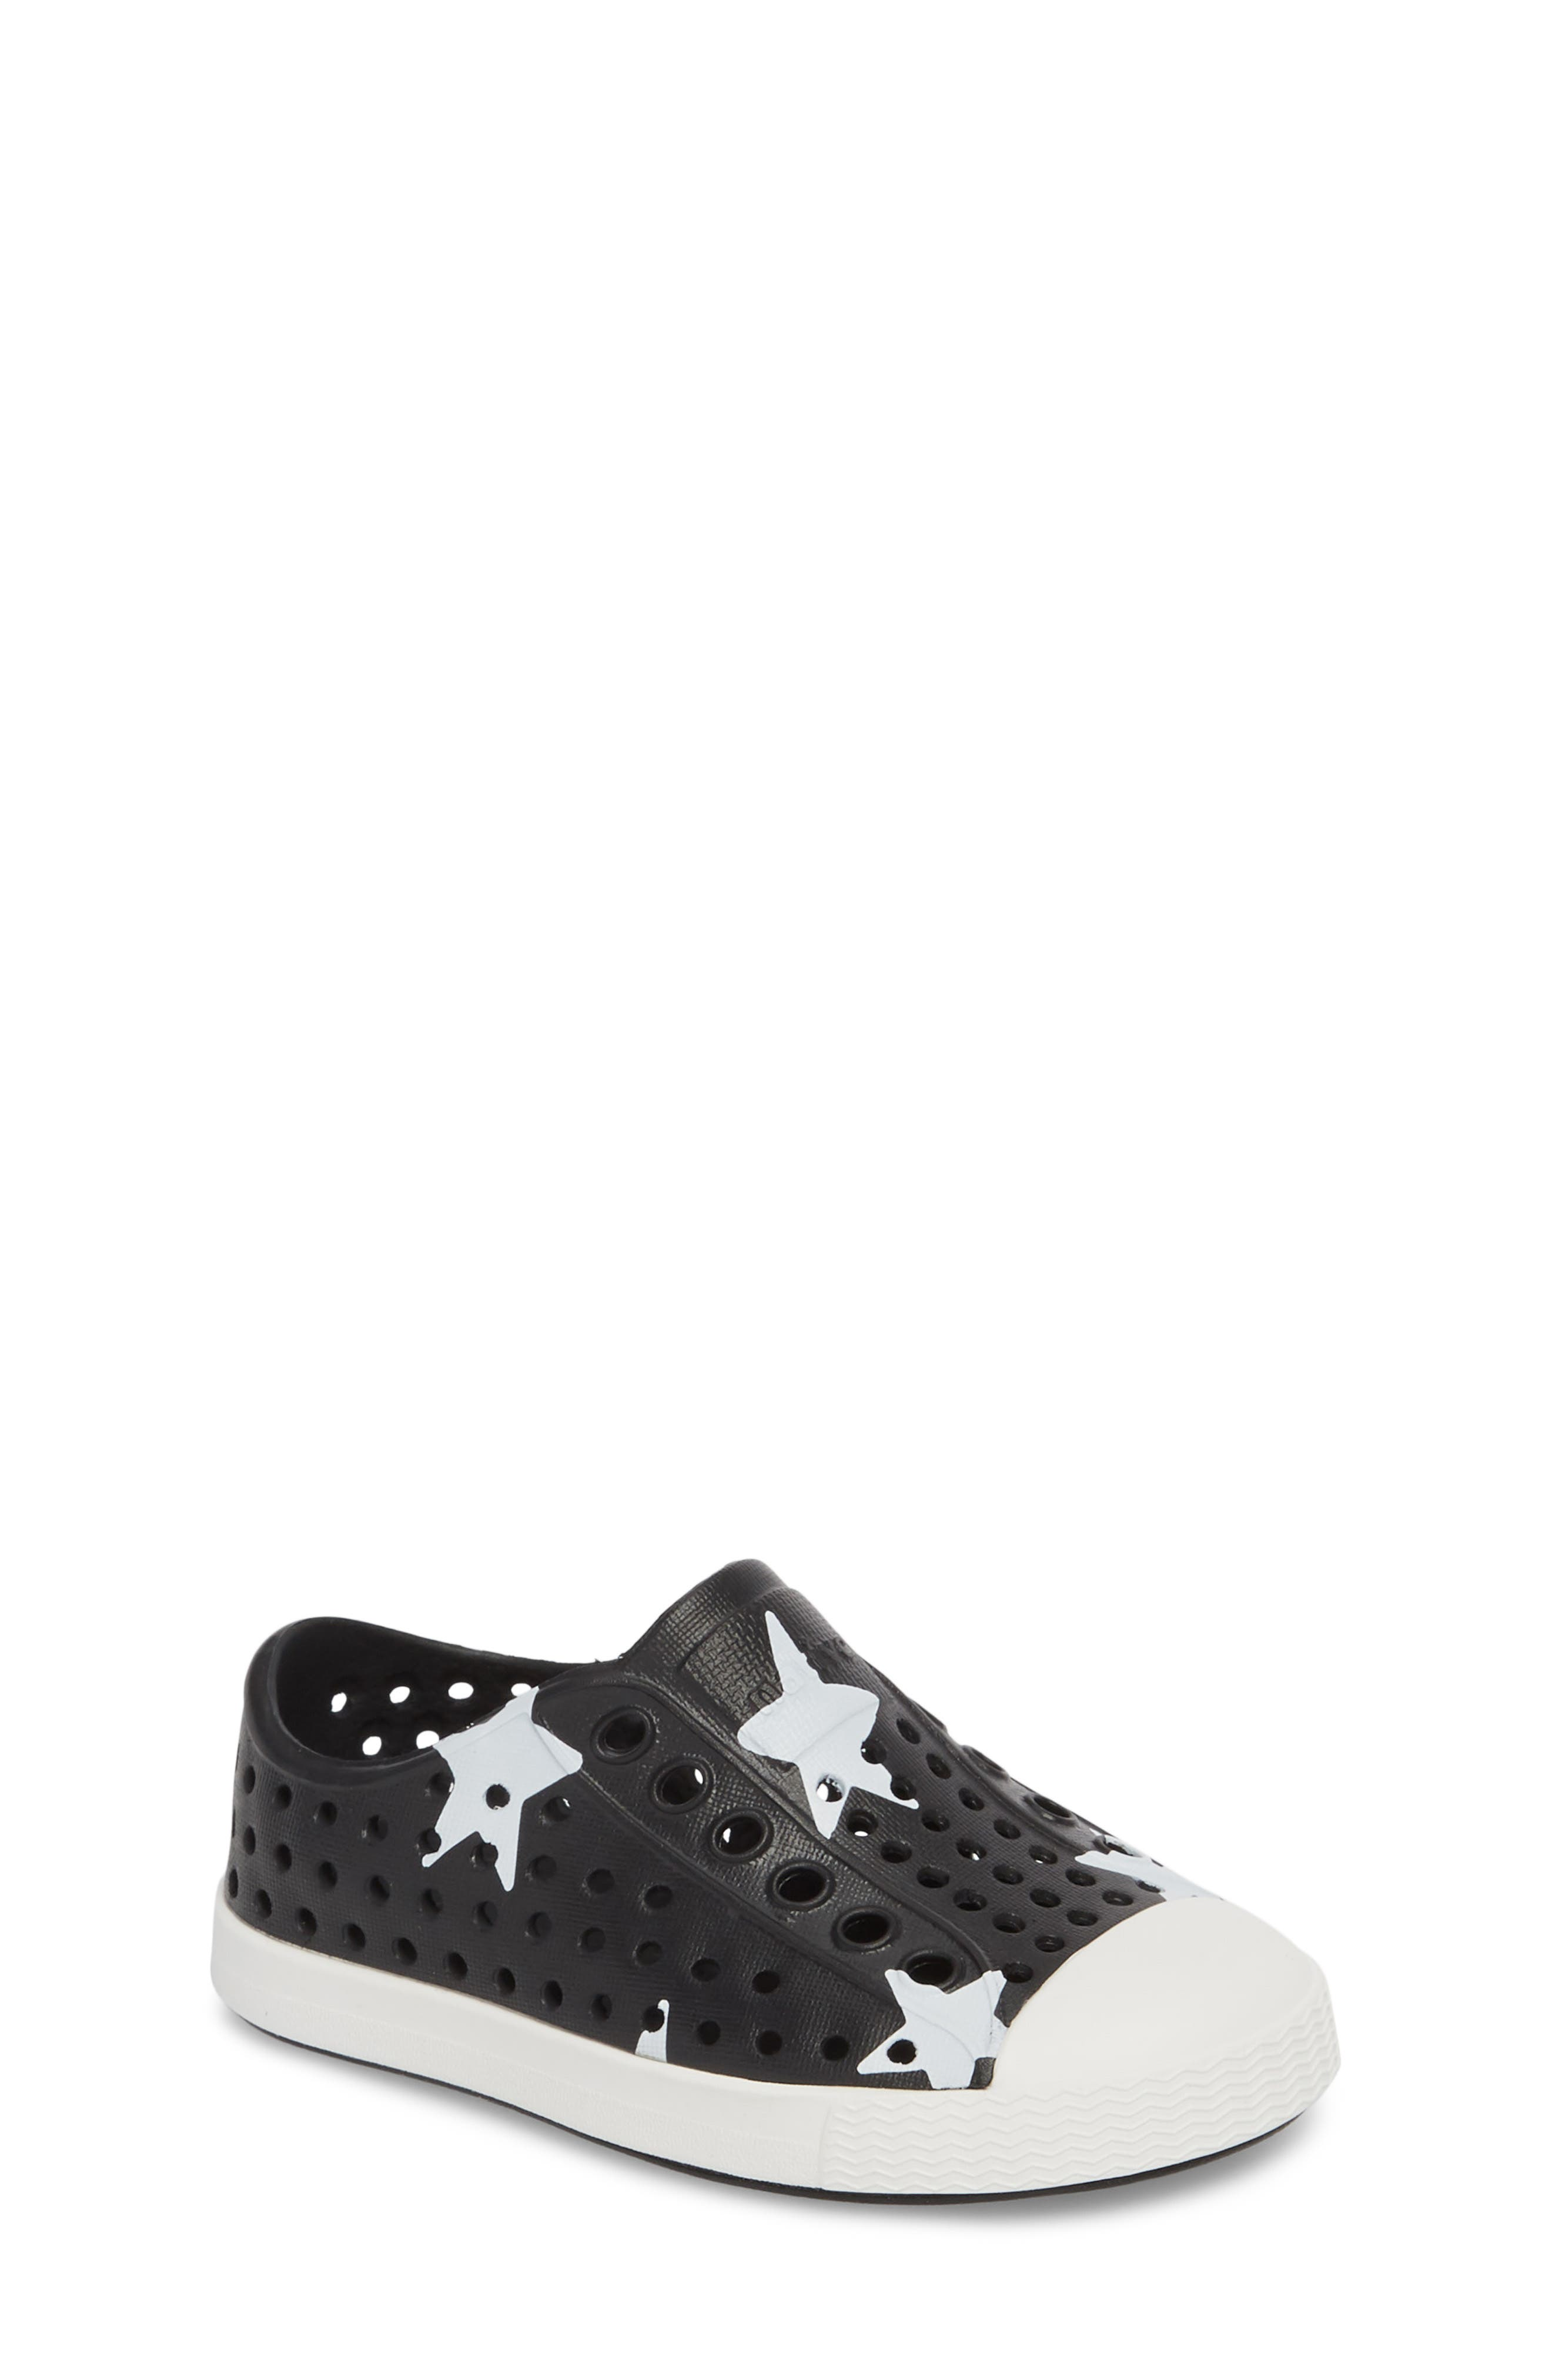 NATIVE SHOES, Jefferson Quartz Slip-On Sneaker, Main thumbnail 1, color, JIFFY BLACK/ WHITE/ STAR